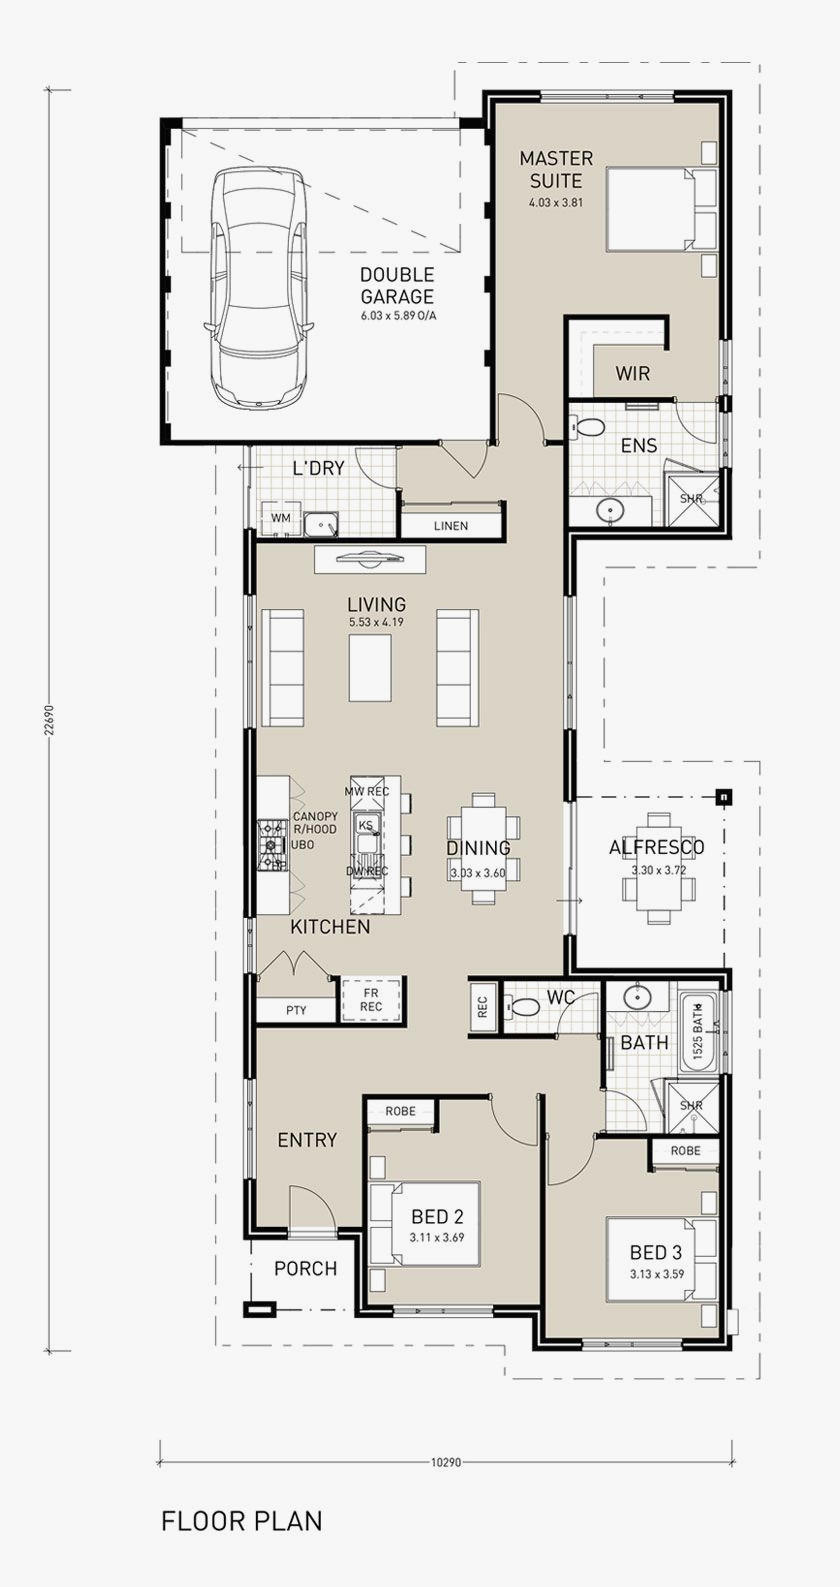 Small Lot House Plans Luxury 3 Storey House Plans for Small Lots Elegant Narrow Lot House